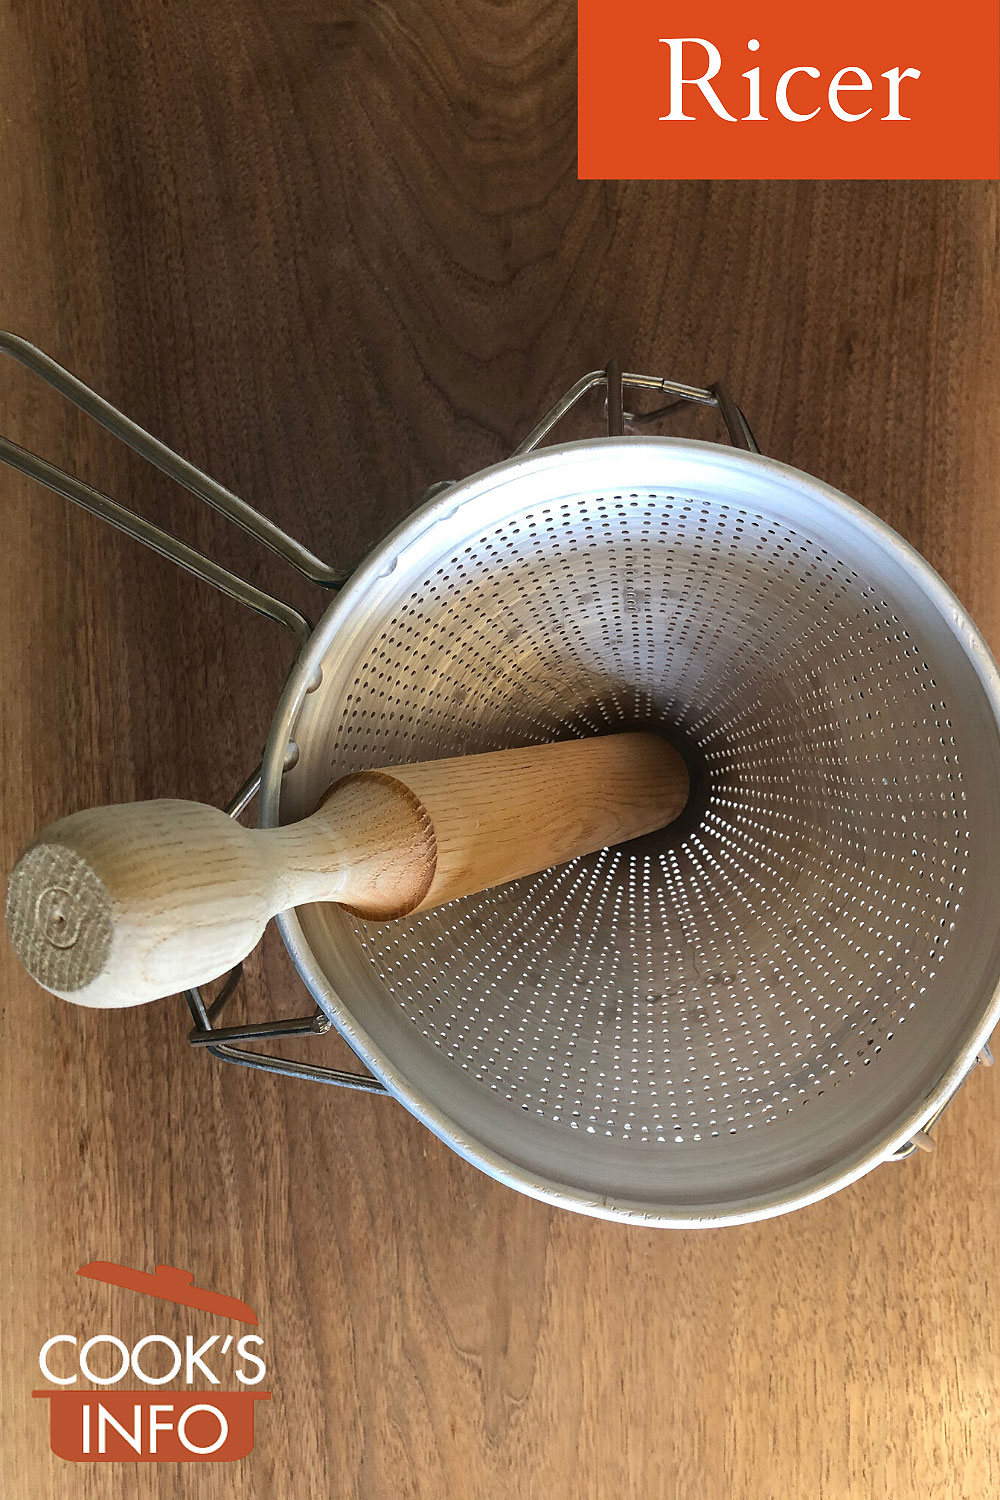 Ricer in stand with pestle, top view